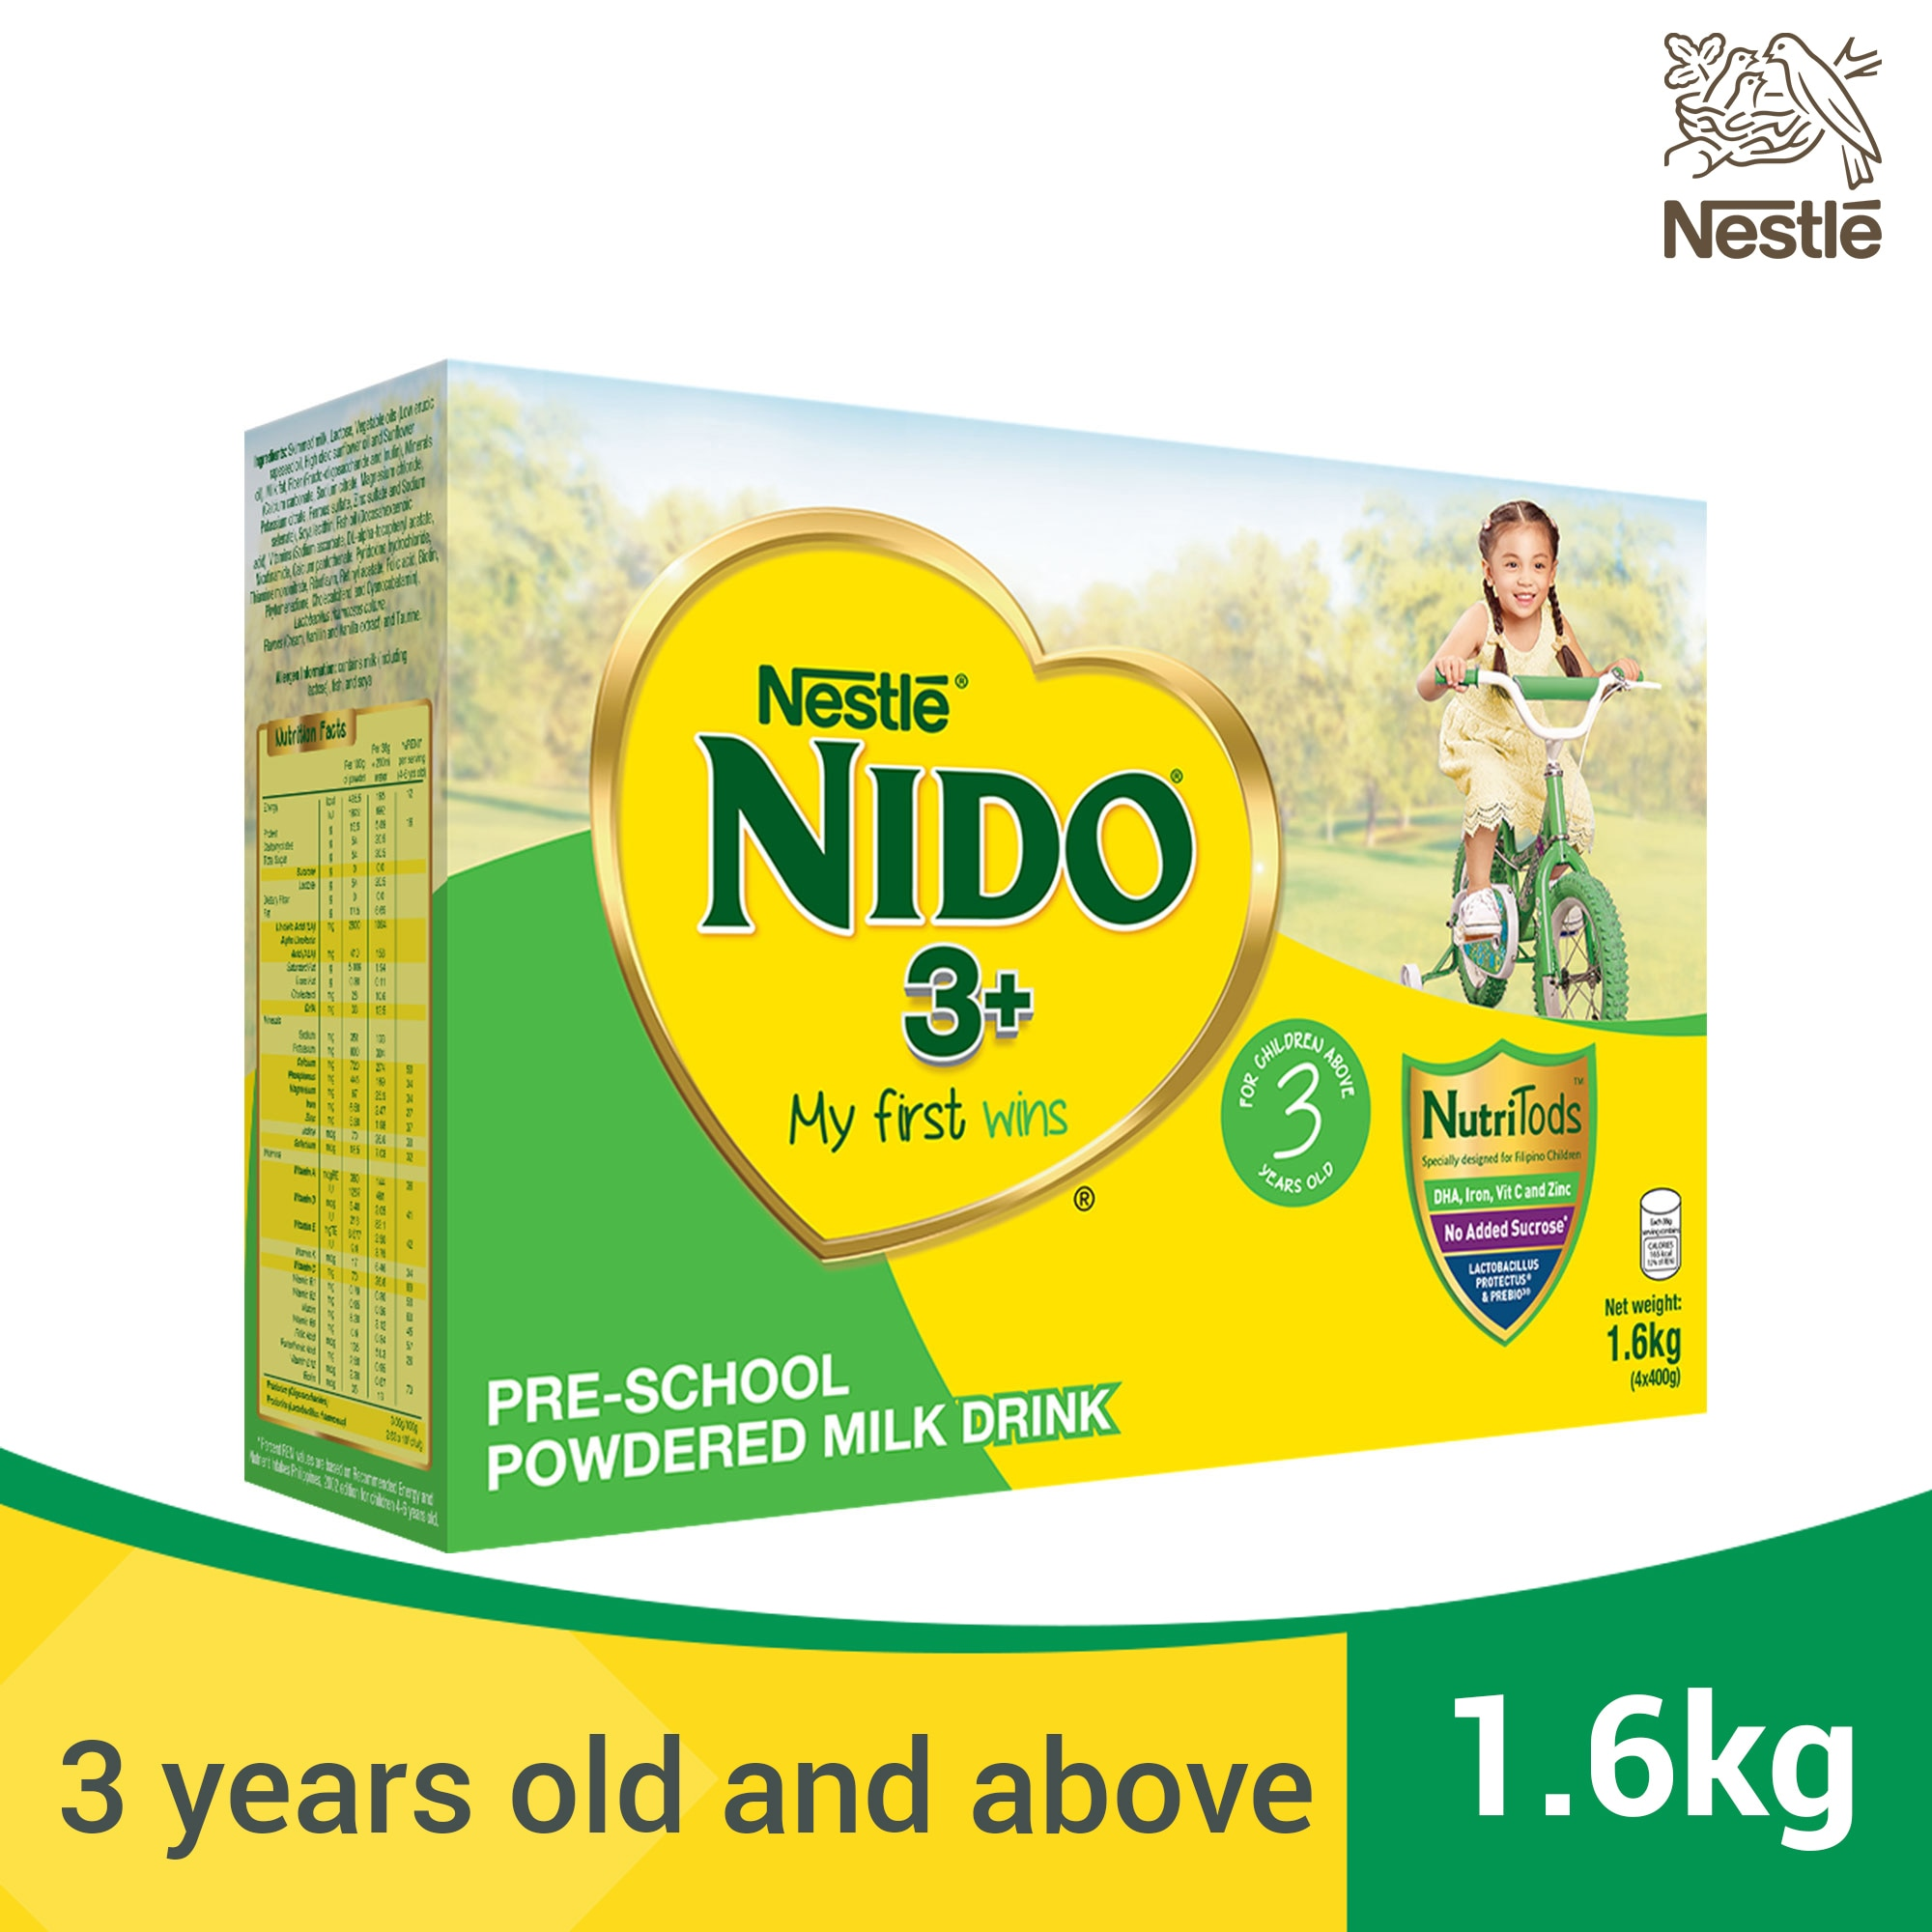 Powdered Milk Drink for Pre-Schoolers Above 3 Years Old 1.6kg